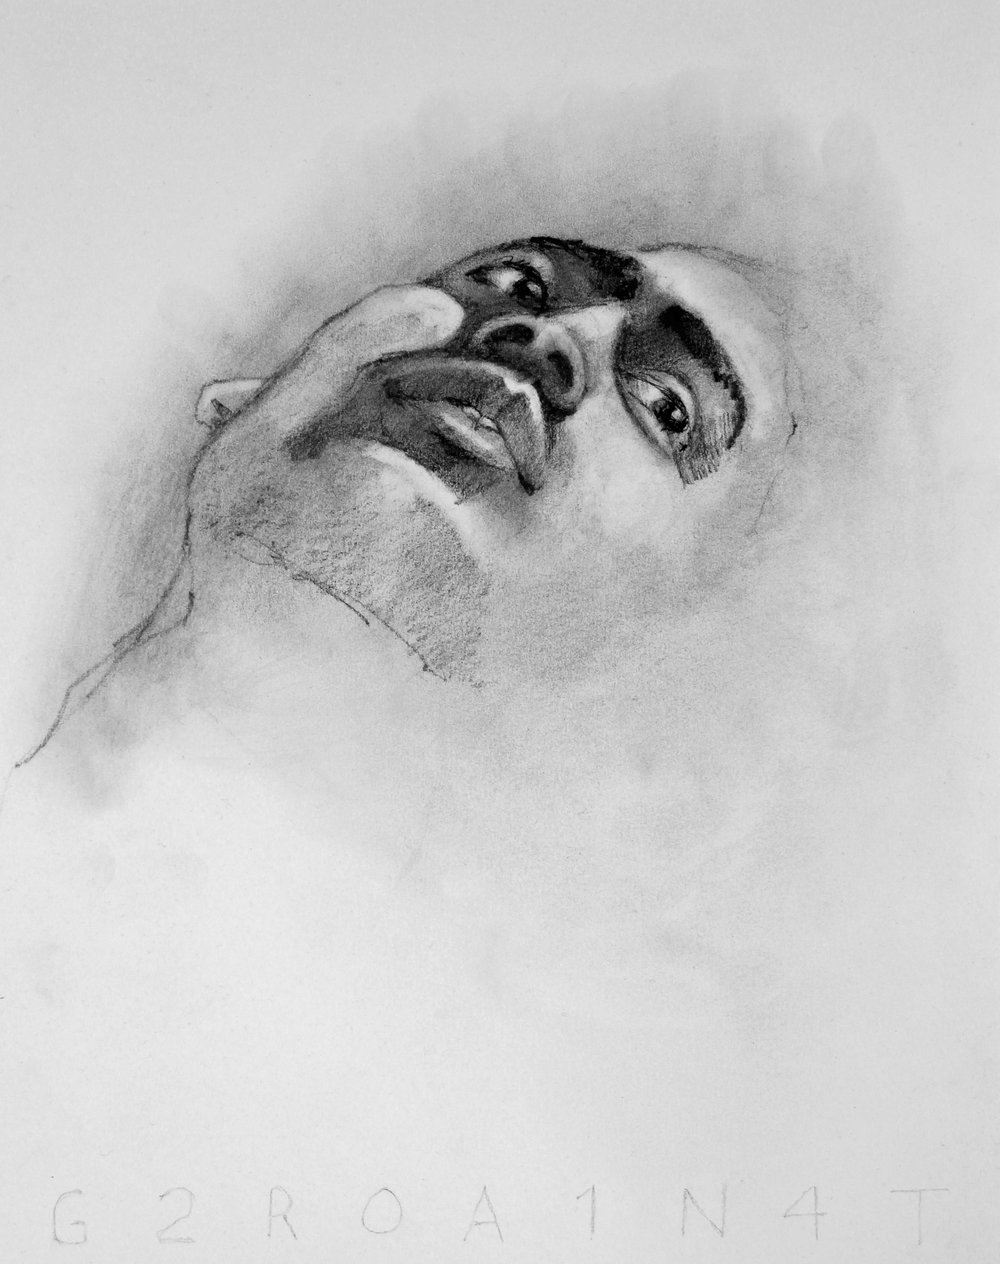 Dan 3 Graphite on Paper 11x14   $150.00